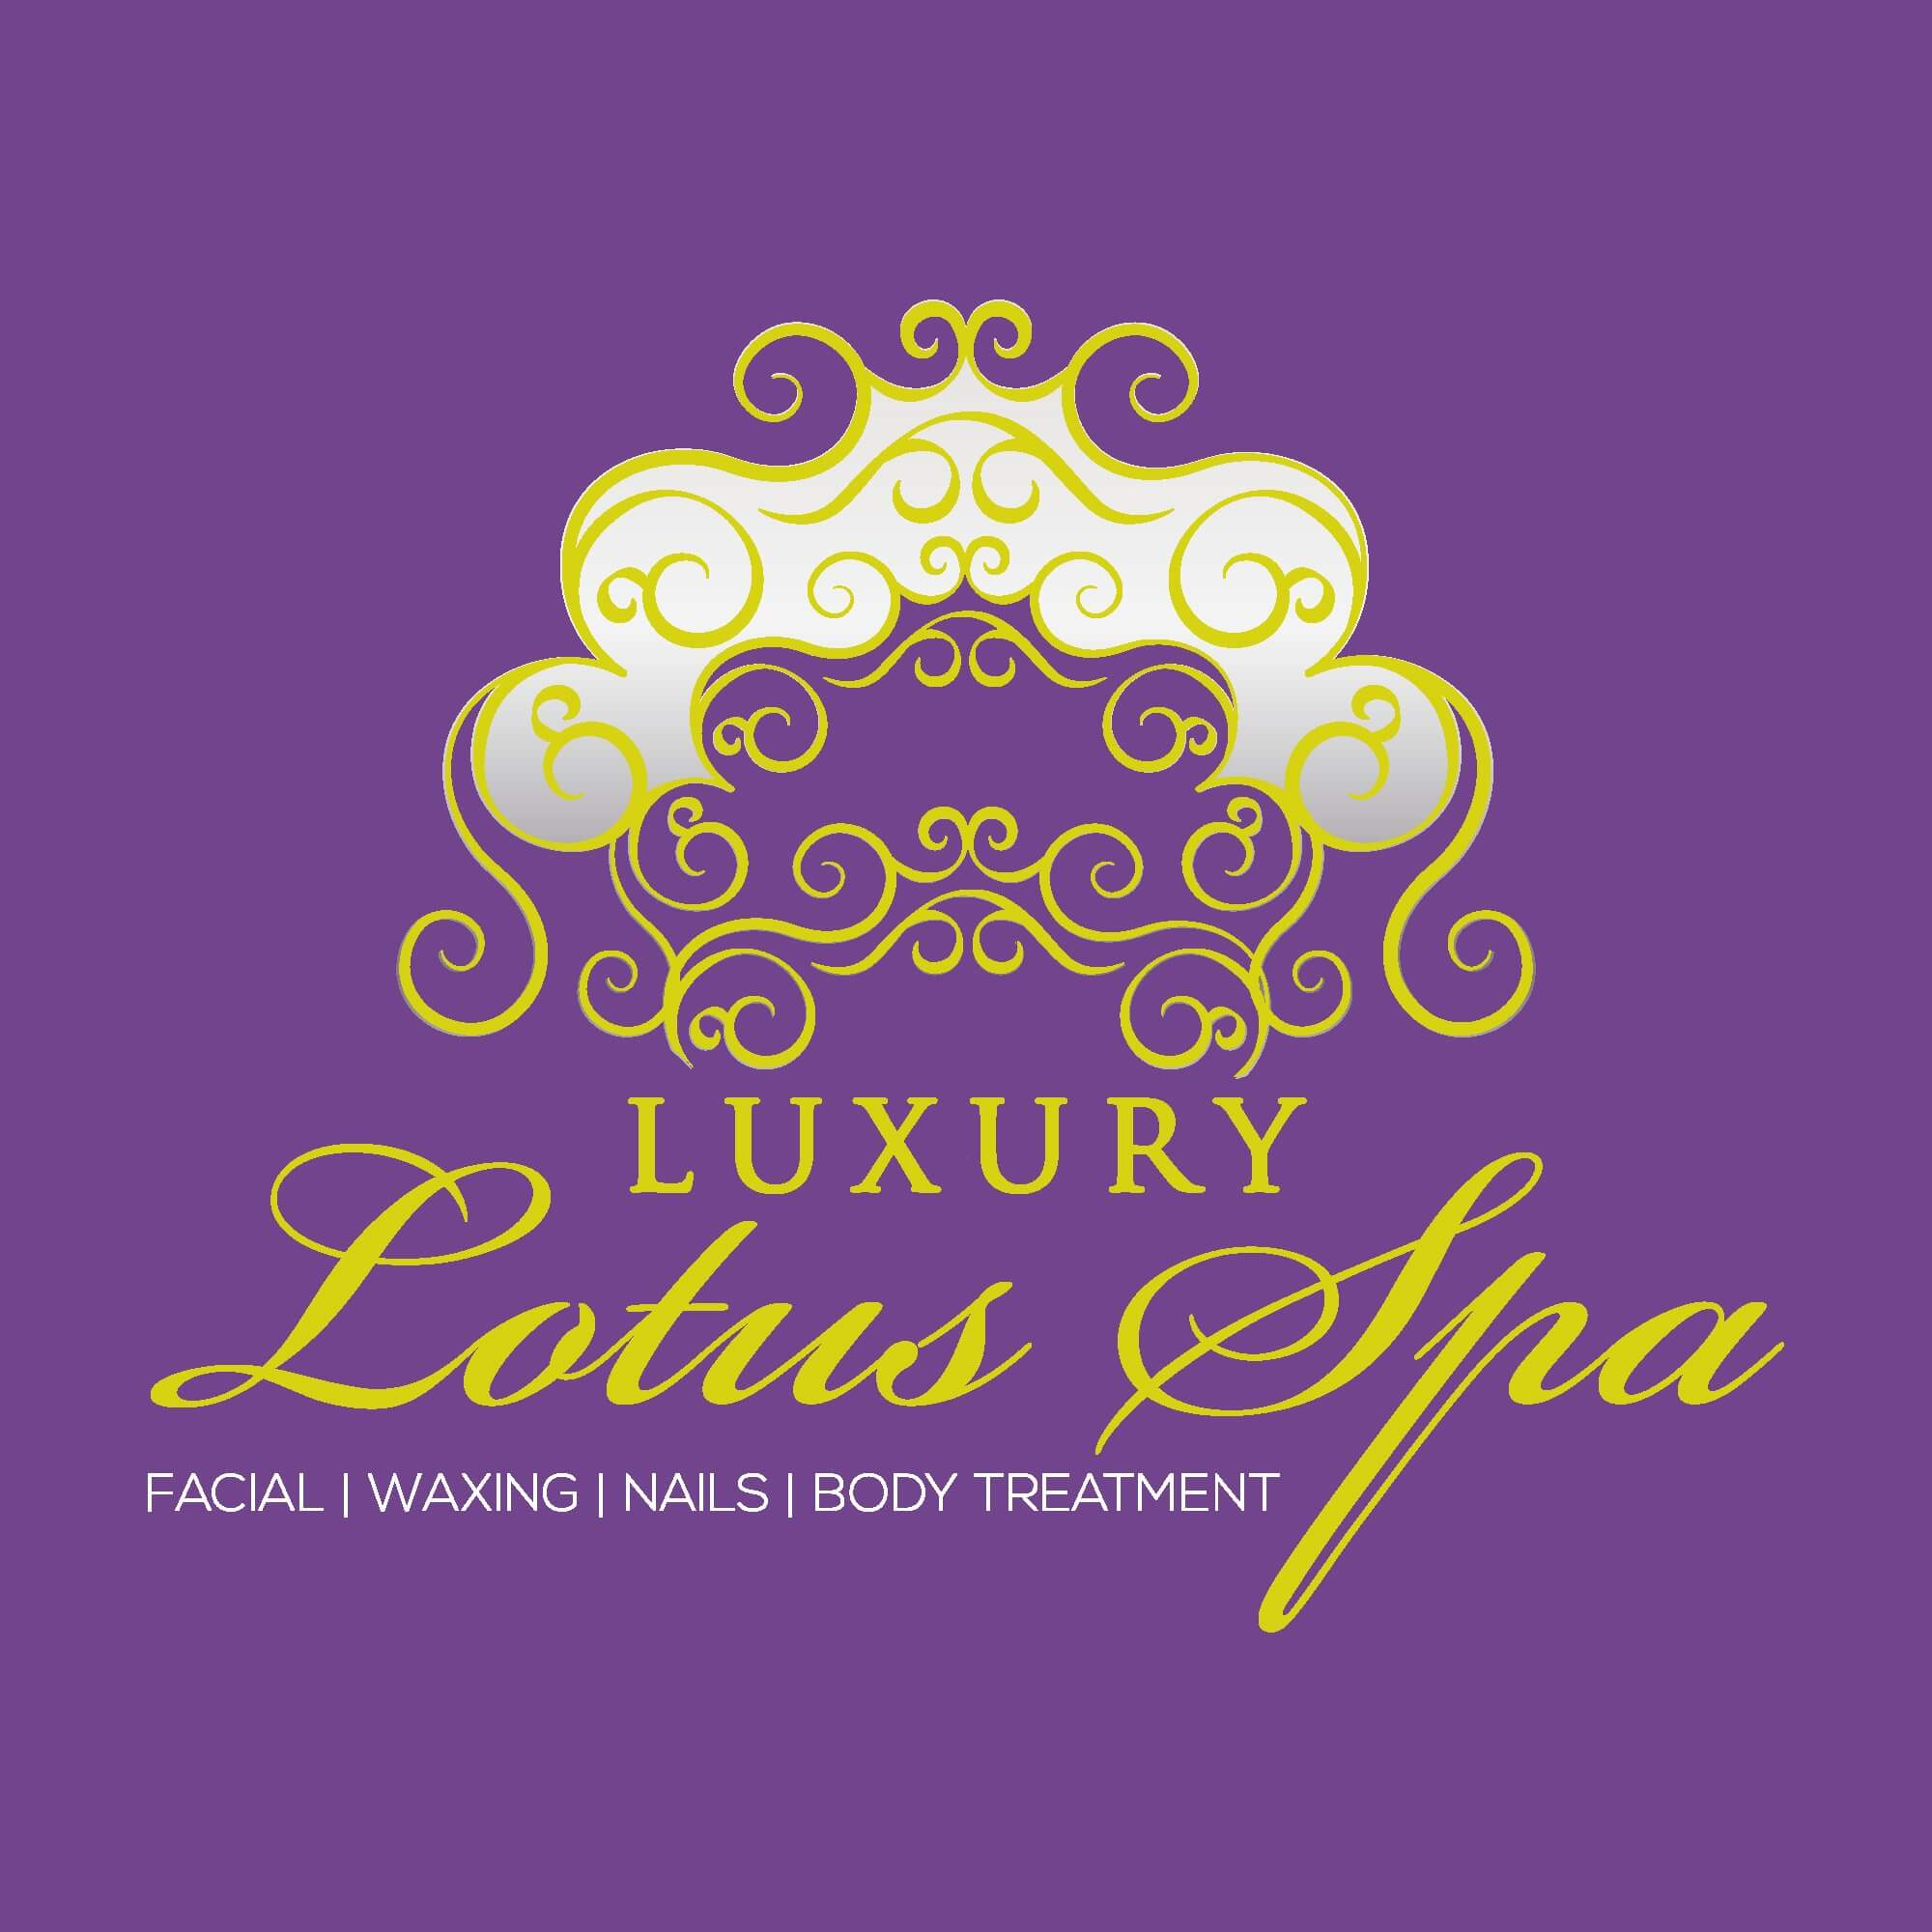 Luxury Lotus Spa